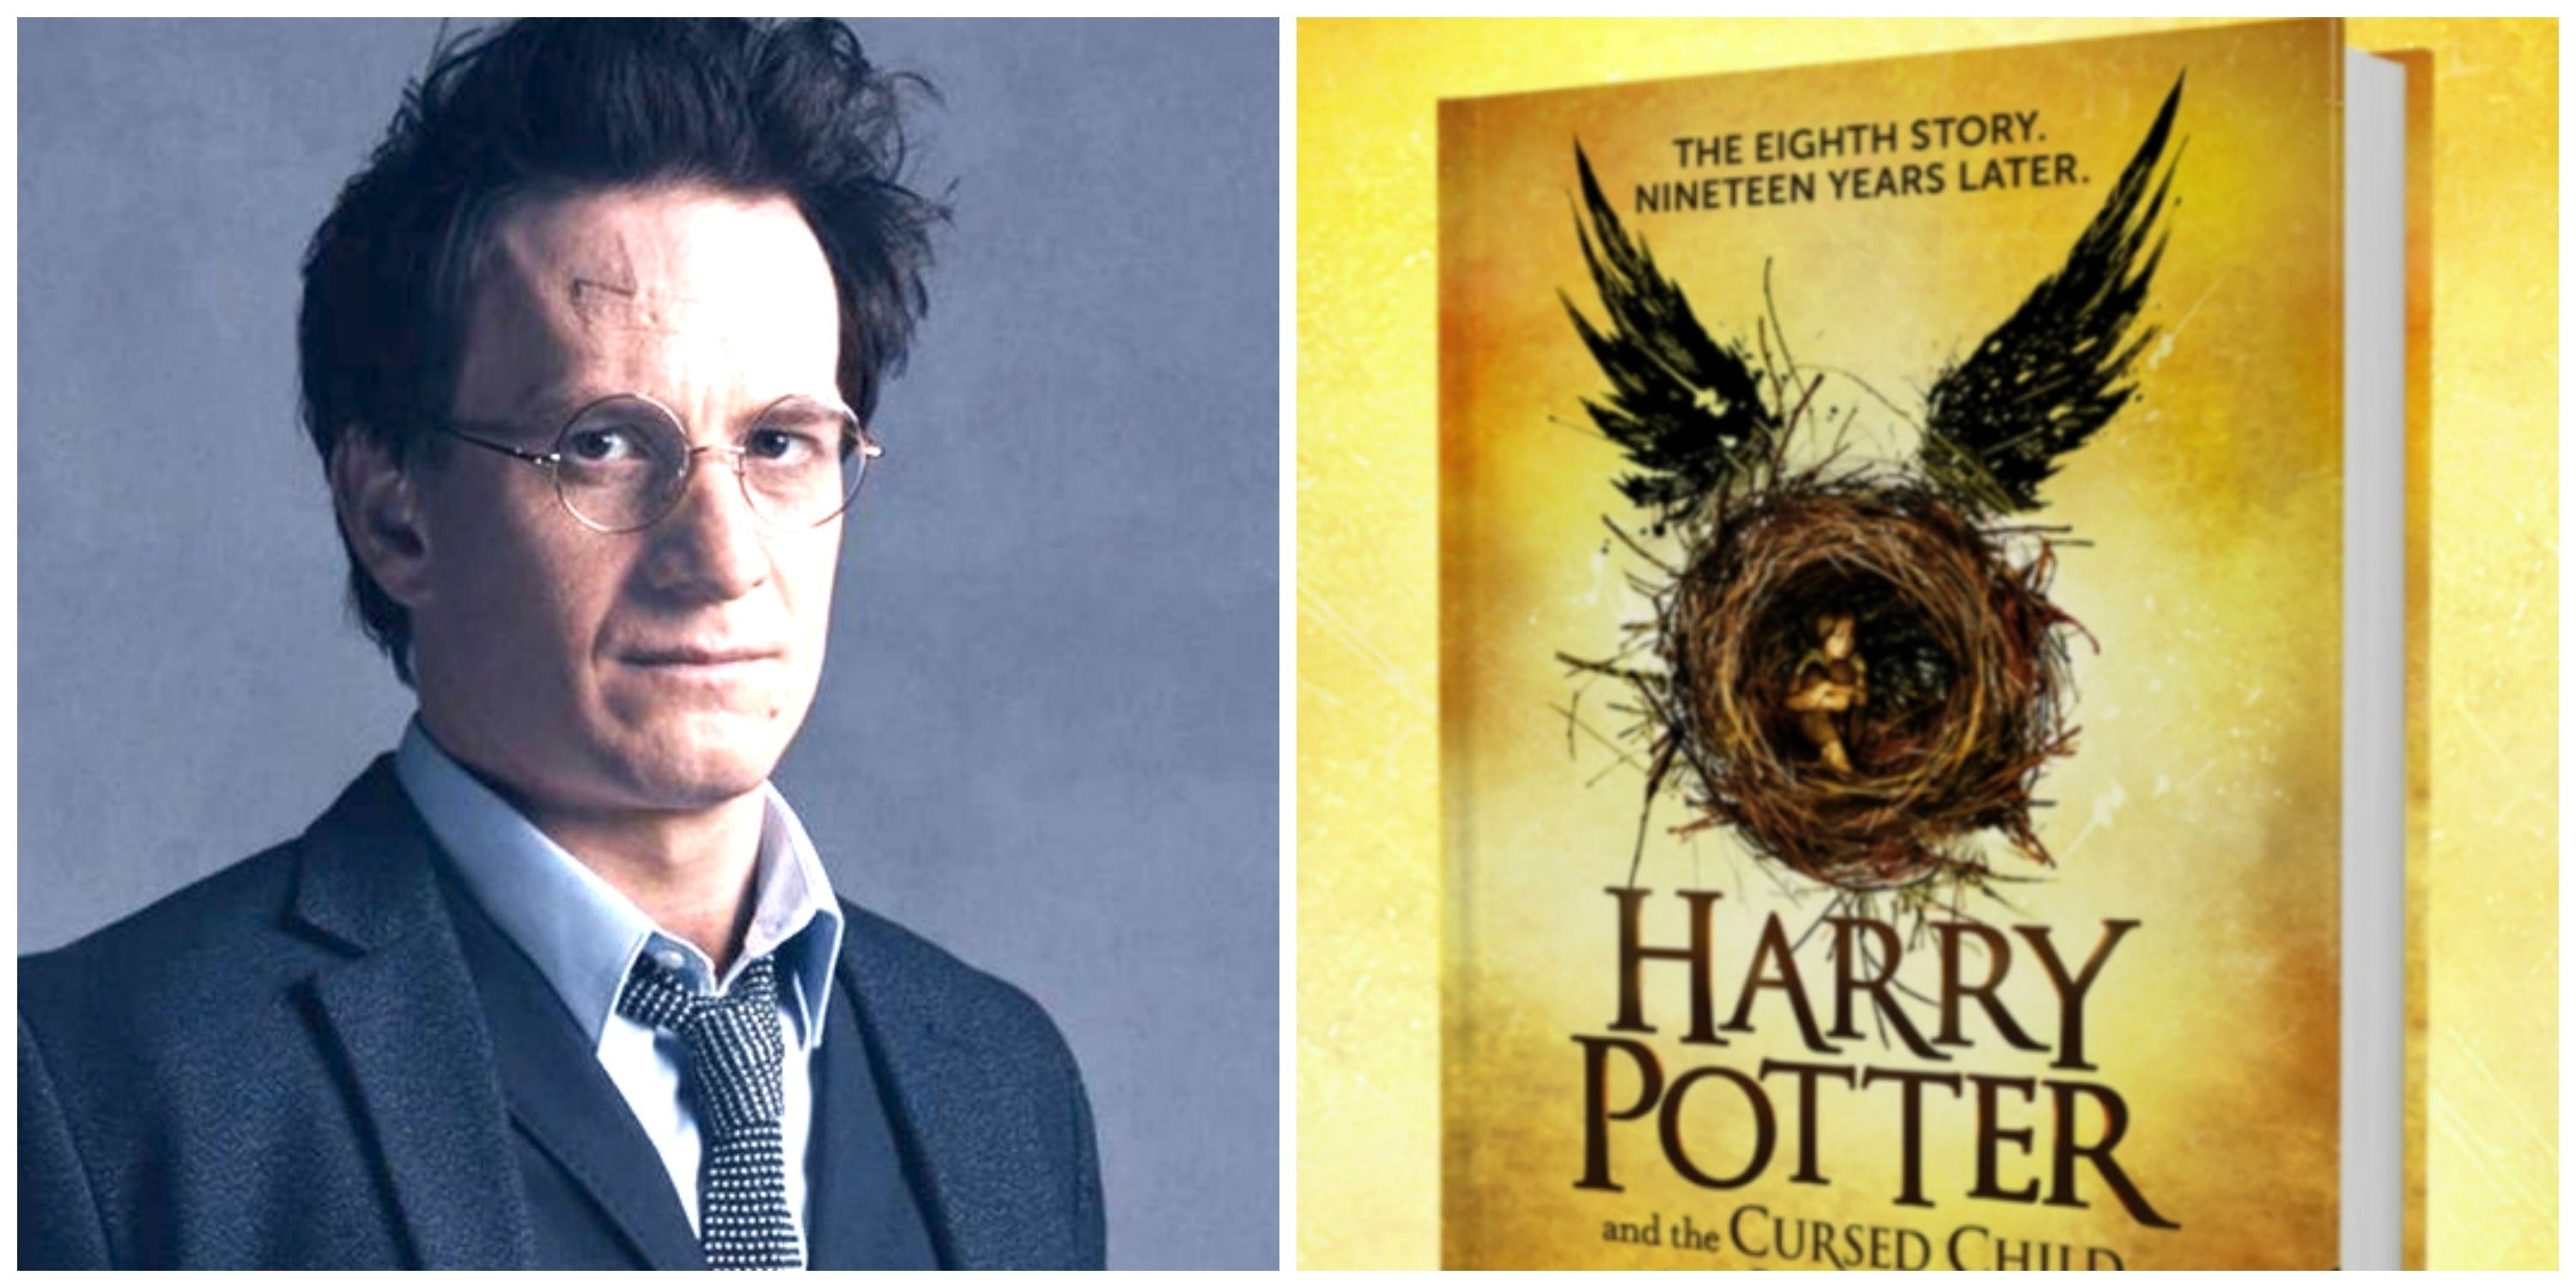 Don't Gift 'Harry Potter and the Cursed Child' for the Holidays